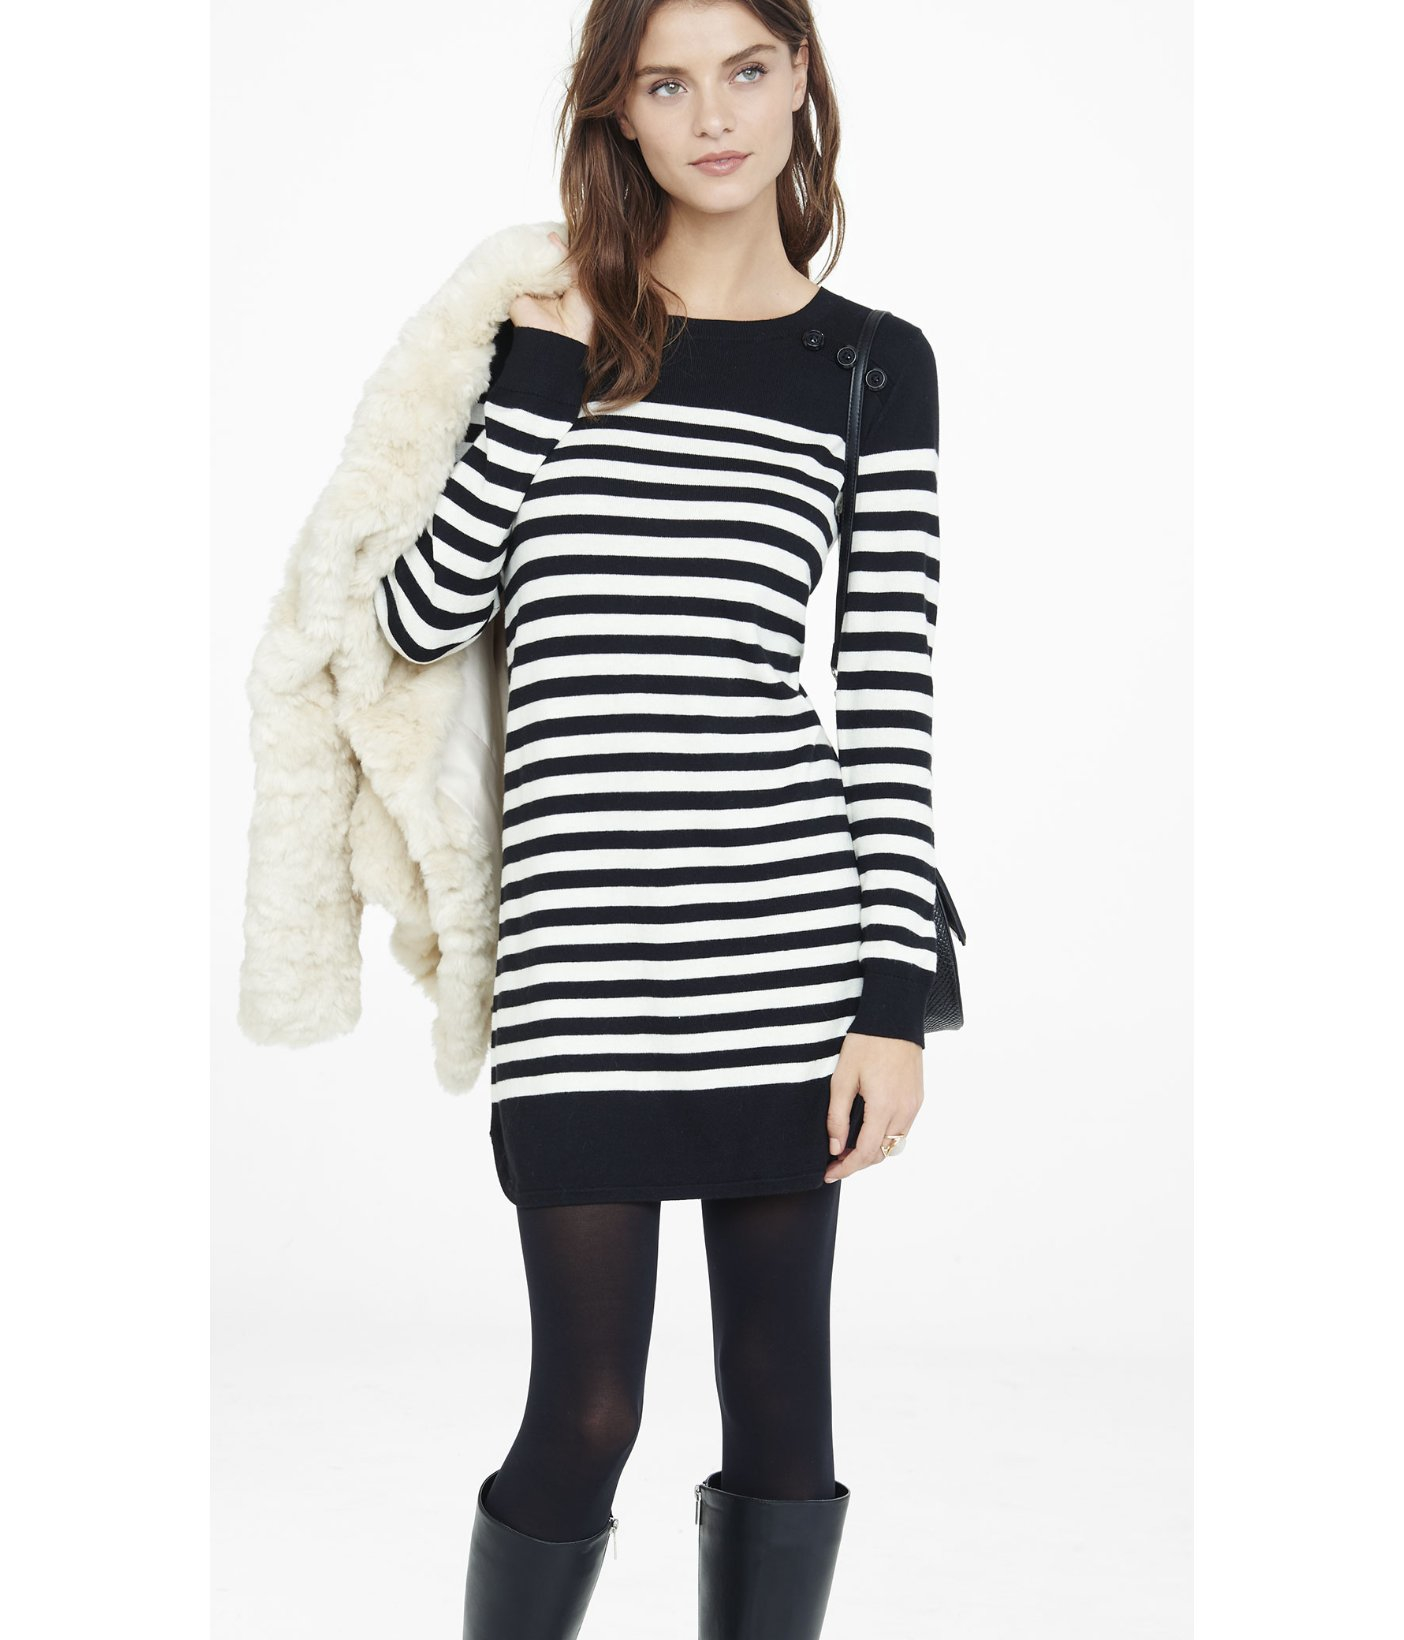 638d634a34a Lyst - Express Black And White Striped Sweater Dress In Black ...